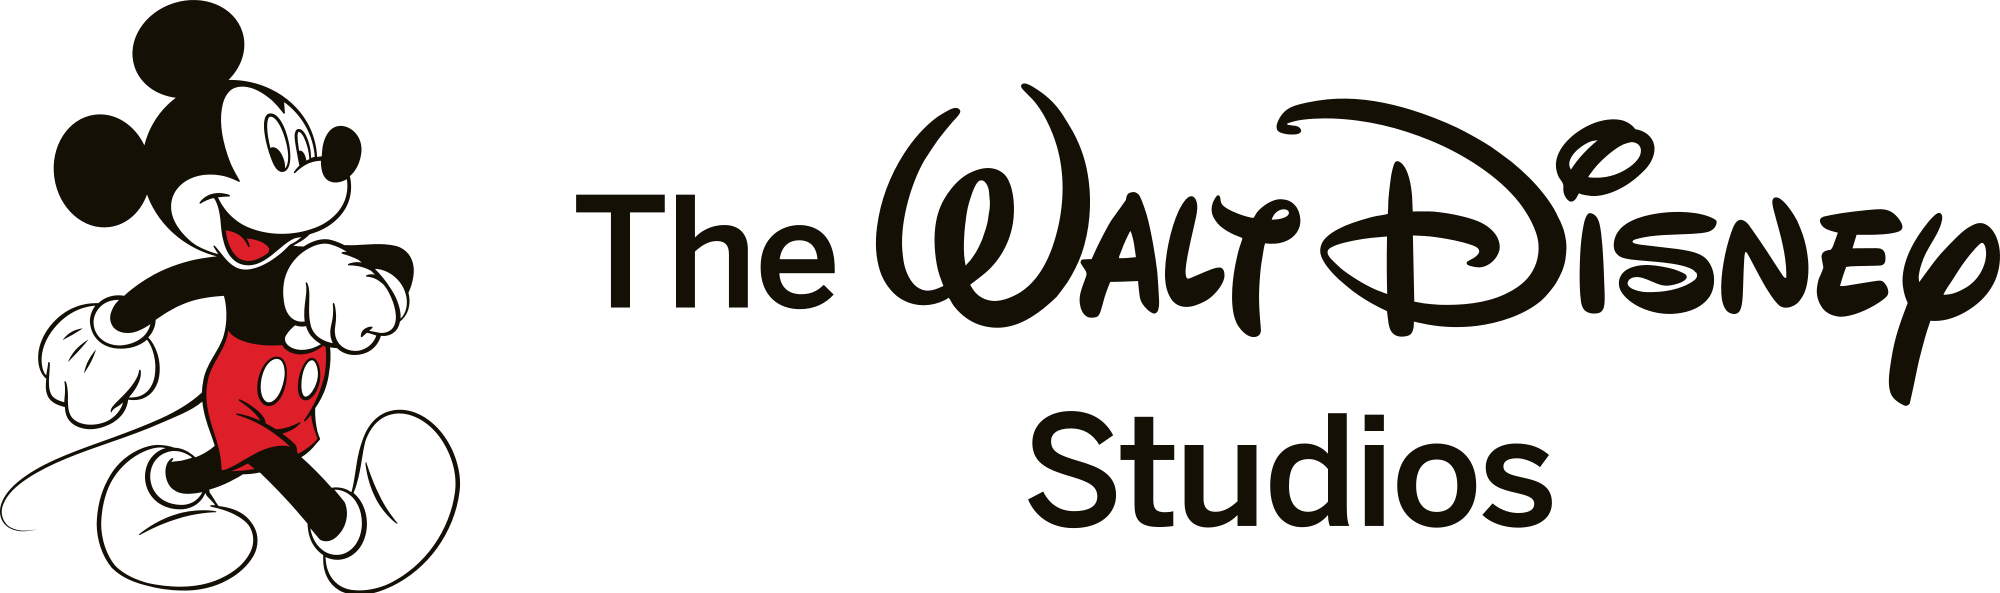 Image - 2000px-The Walt Disney Studios logo.png | Disney Wiki | FANDOM  powered by Wikia - Walt Disney PNG